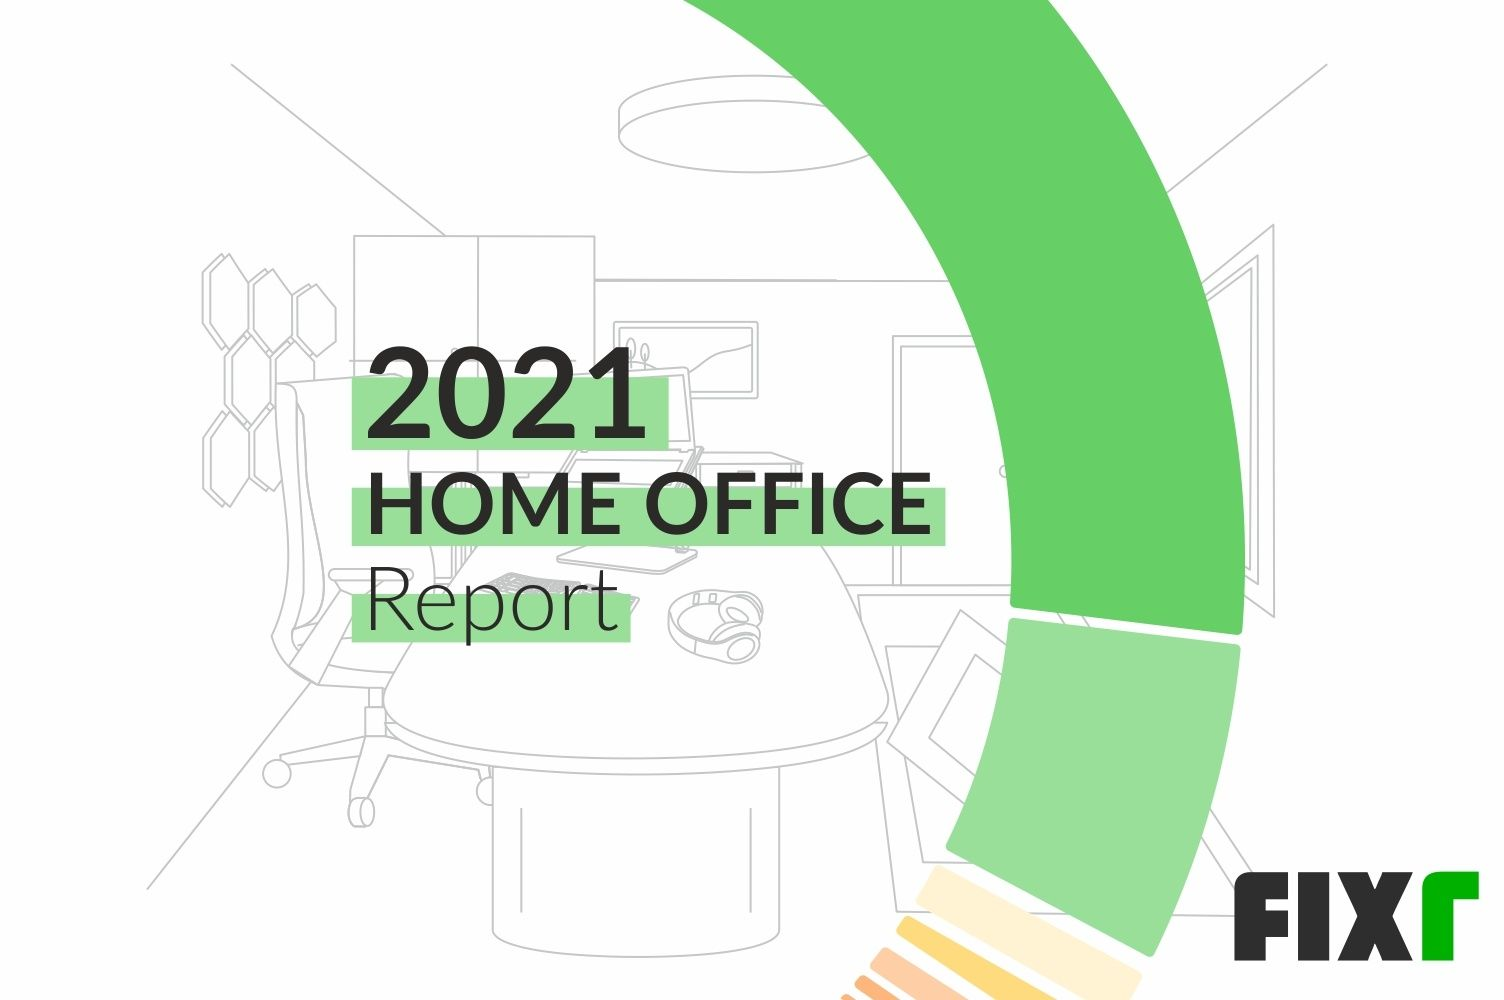 Home Office Design in 2021: Key Insights and Expert Recommendations